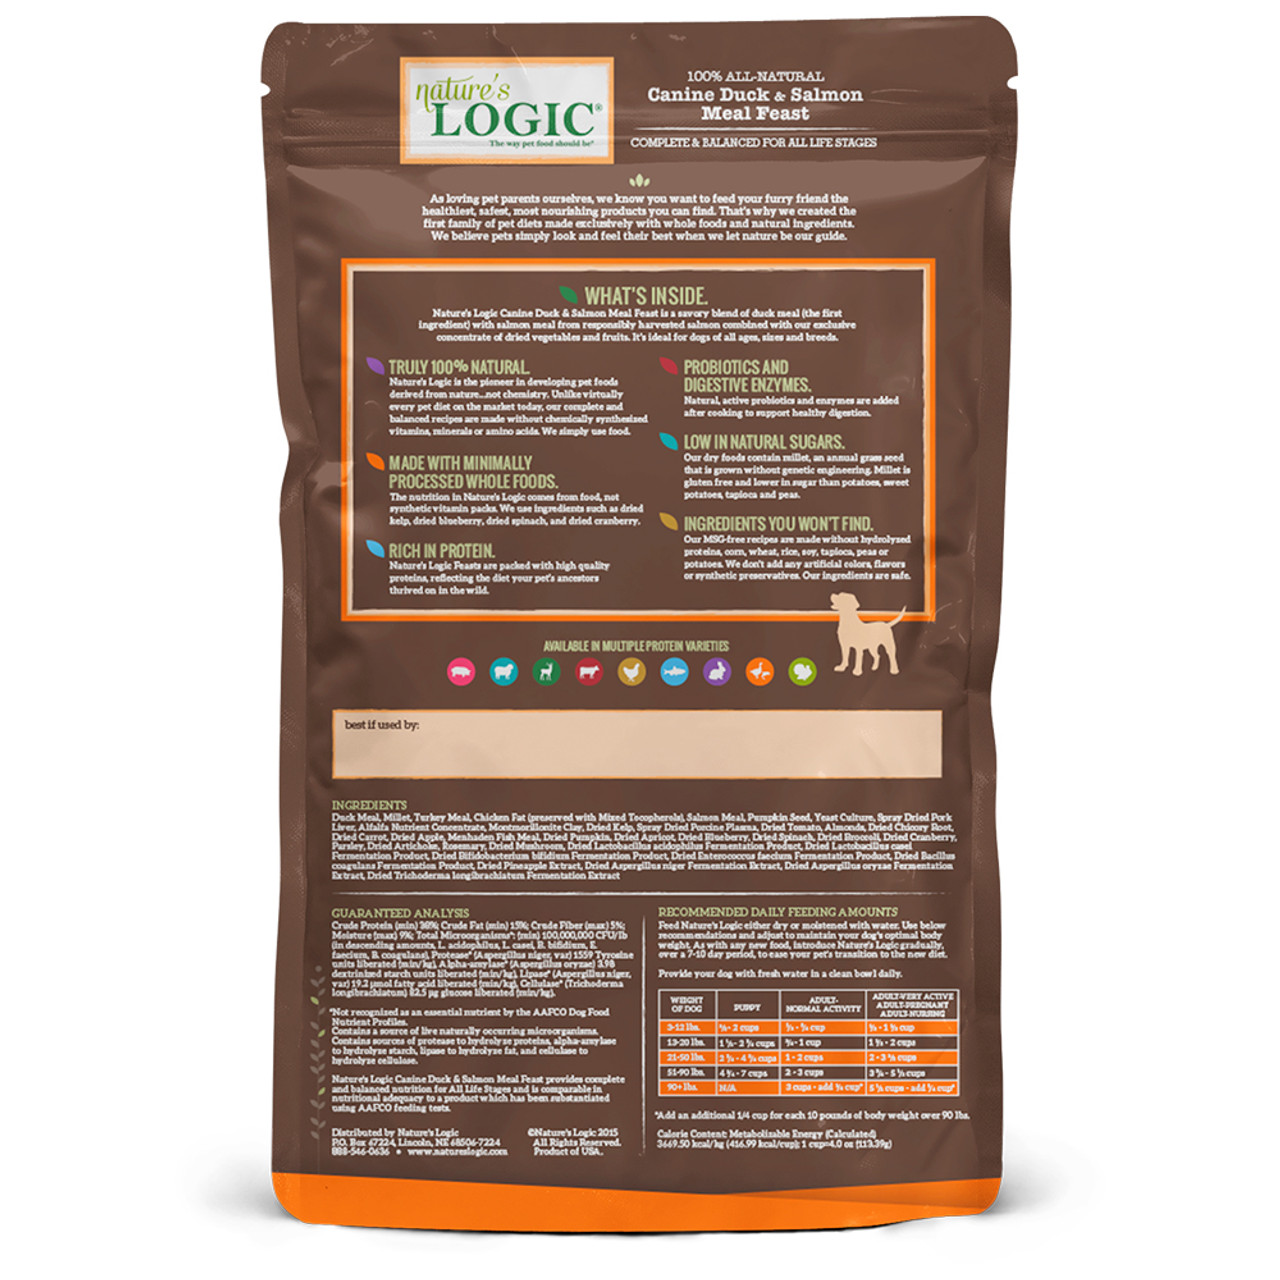 Nature's Logic Canine Duck & Salmon Meal Feast Dry Dog Food